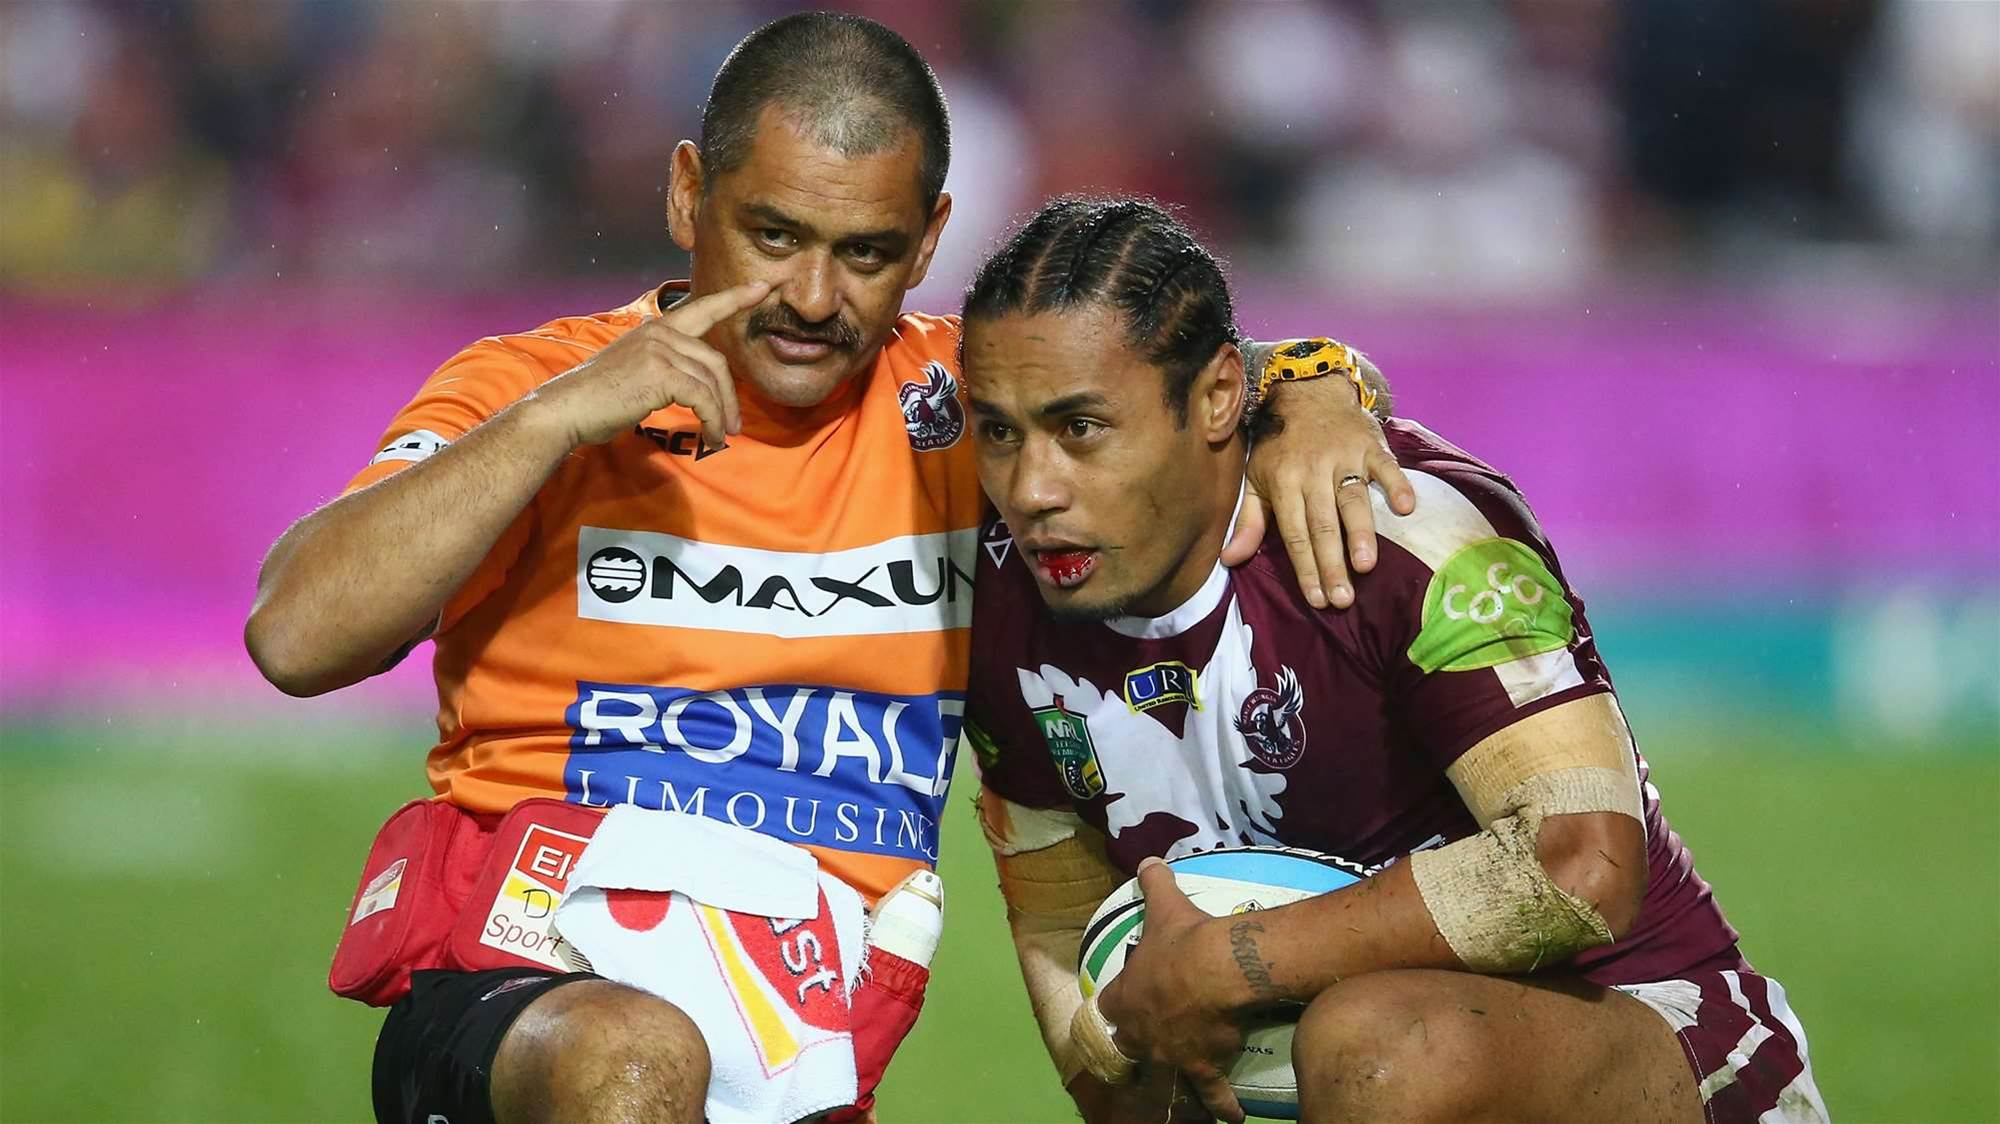 Manly's Matai set for retirement